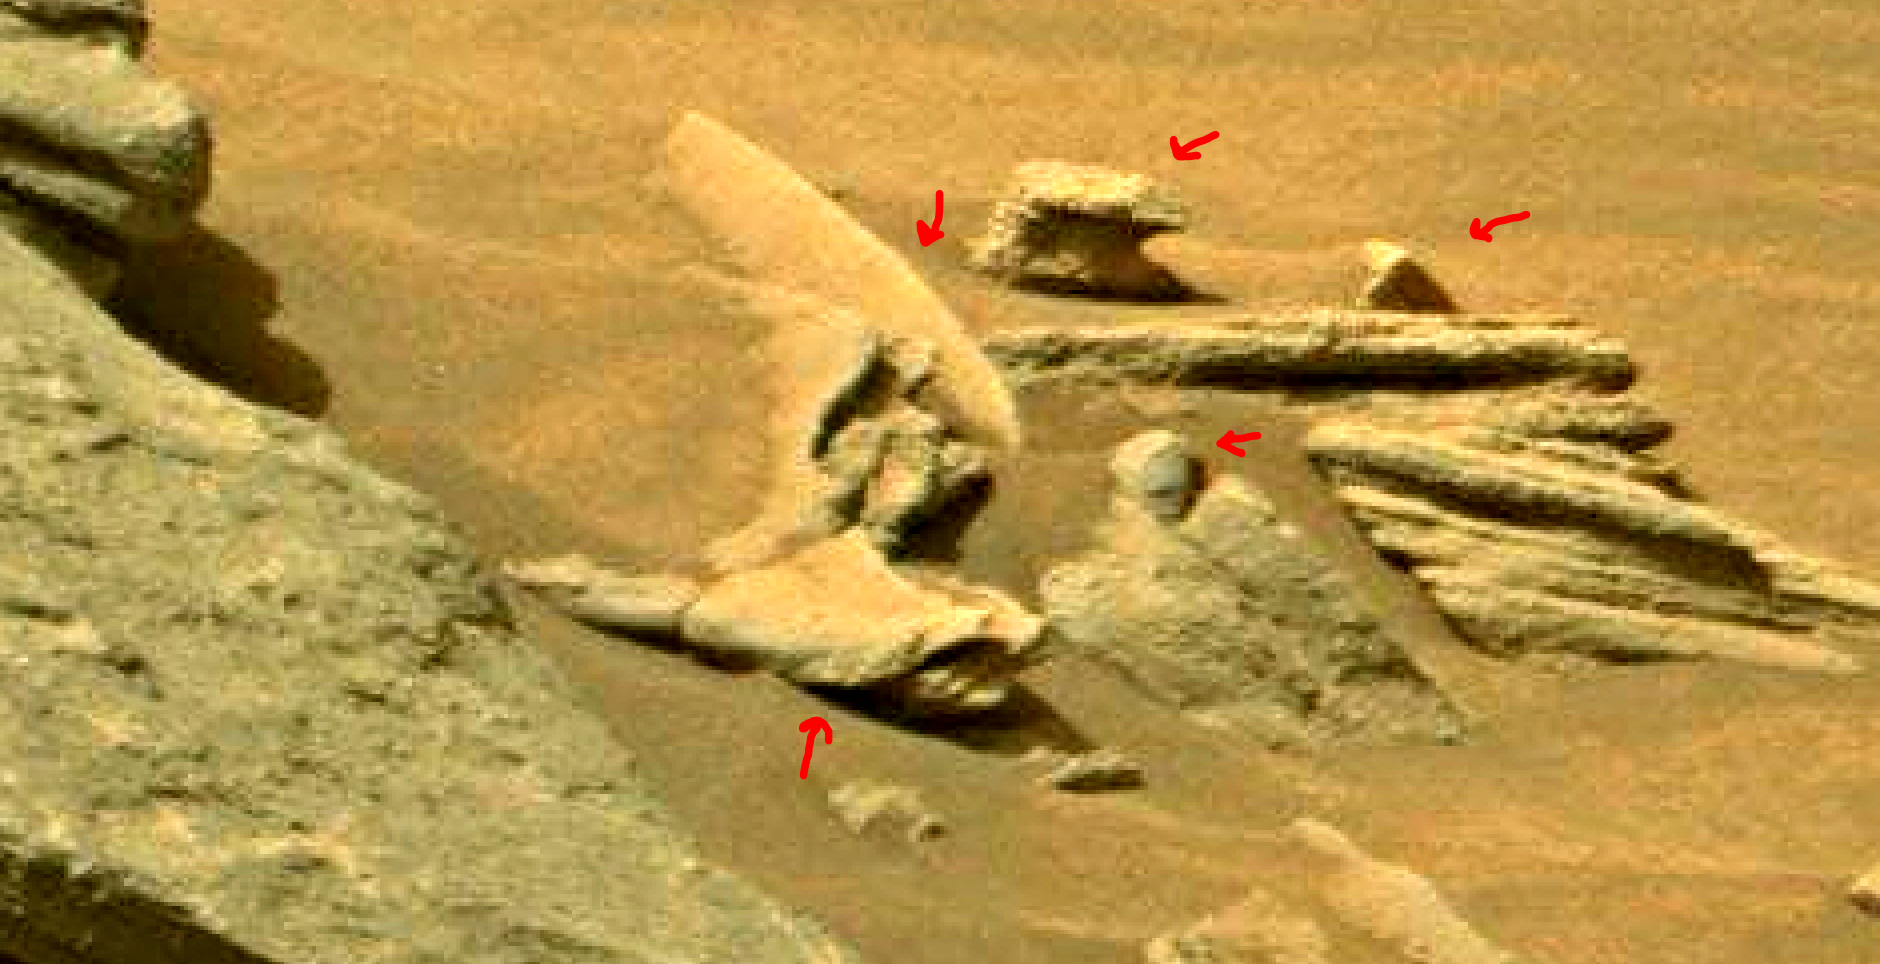 mars-sol-1467-anomaly-artifacts-5-was-life-on-mars